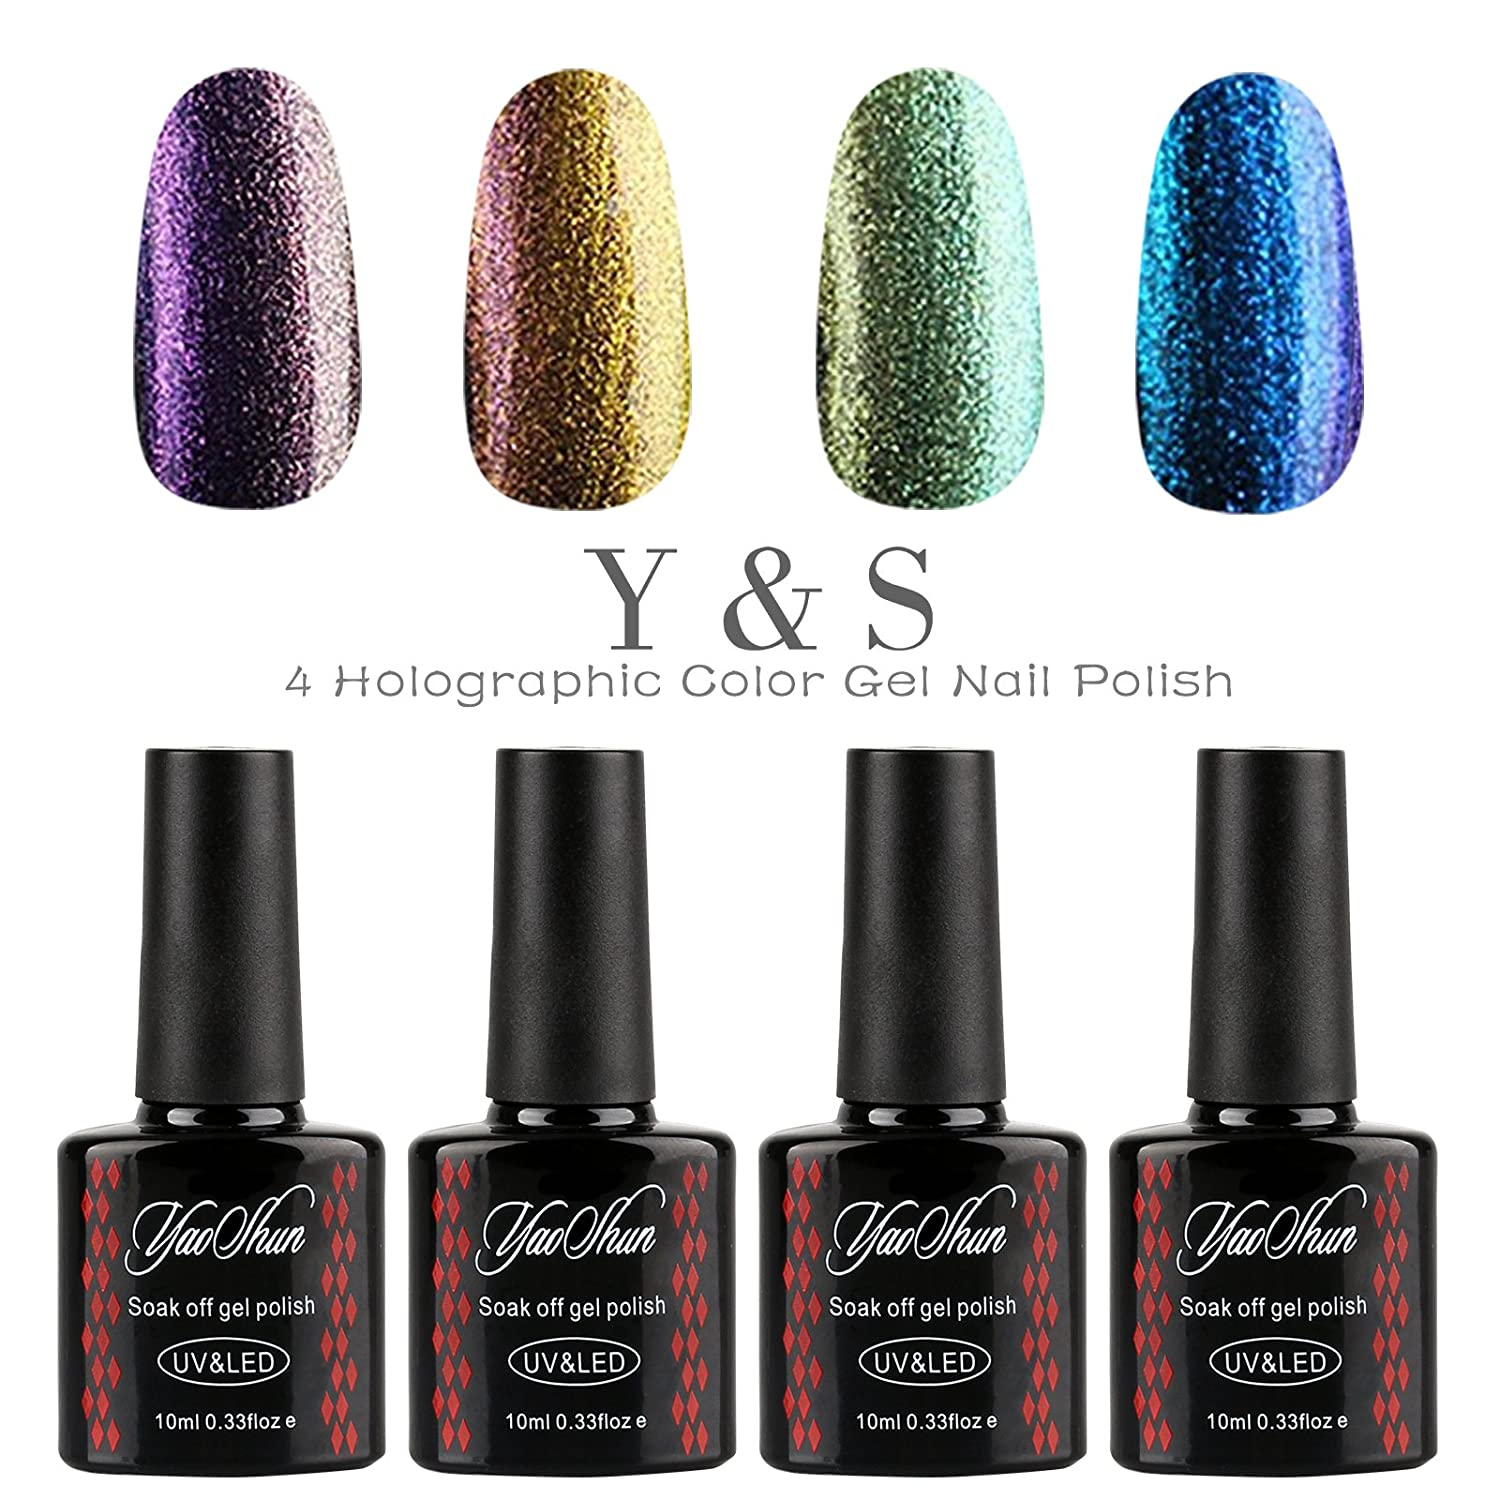 Amazon.com: Y&S Holographic Glitter Gel Nails Polish UV LED ...